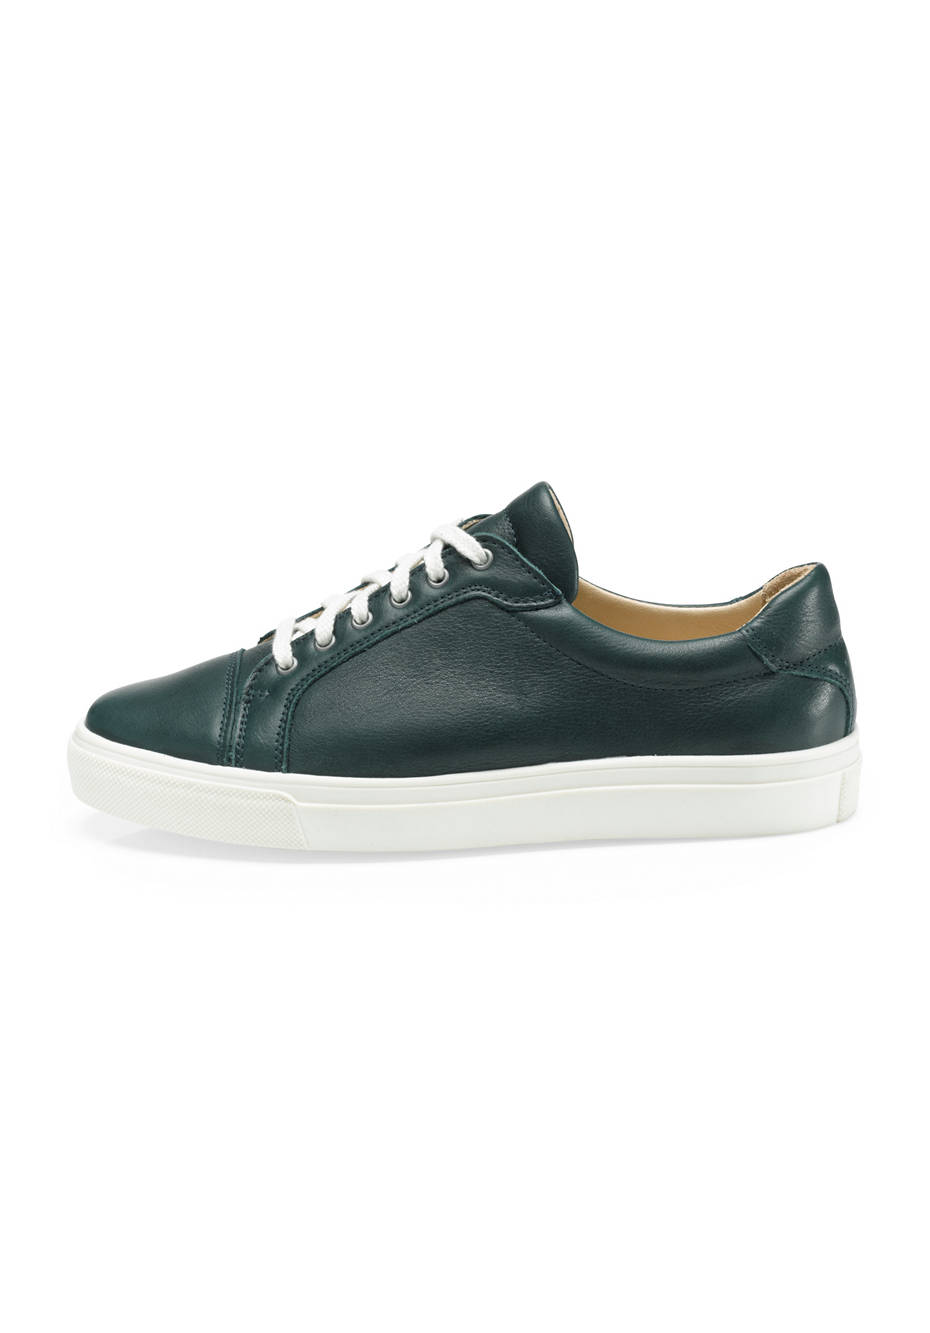 Damen Sneaker aus Leder from Hessnatur